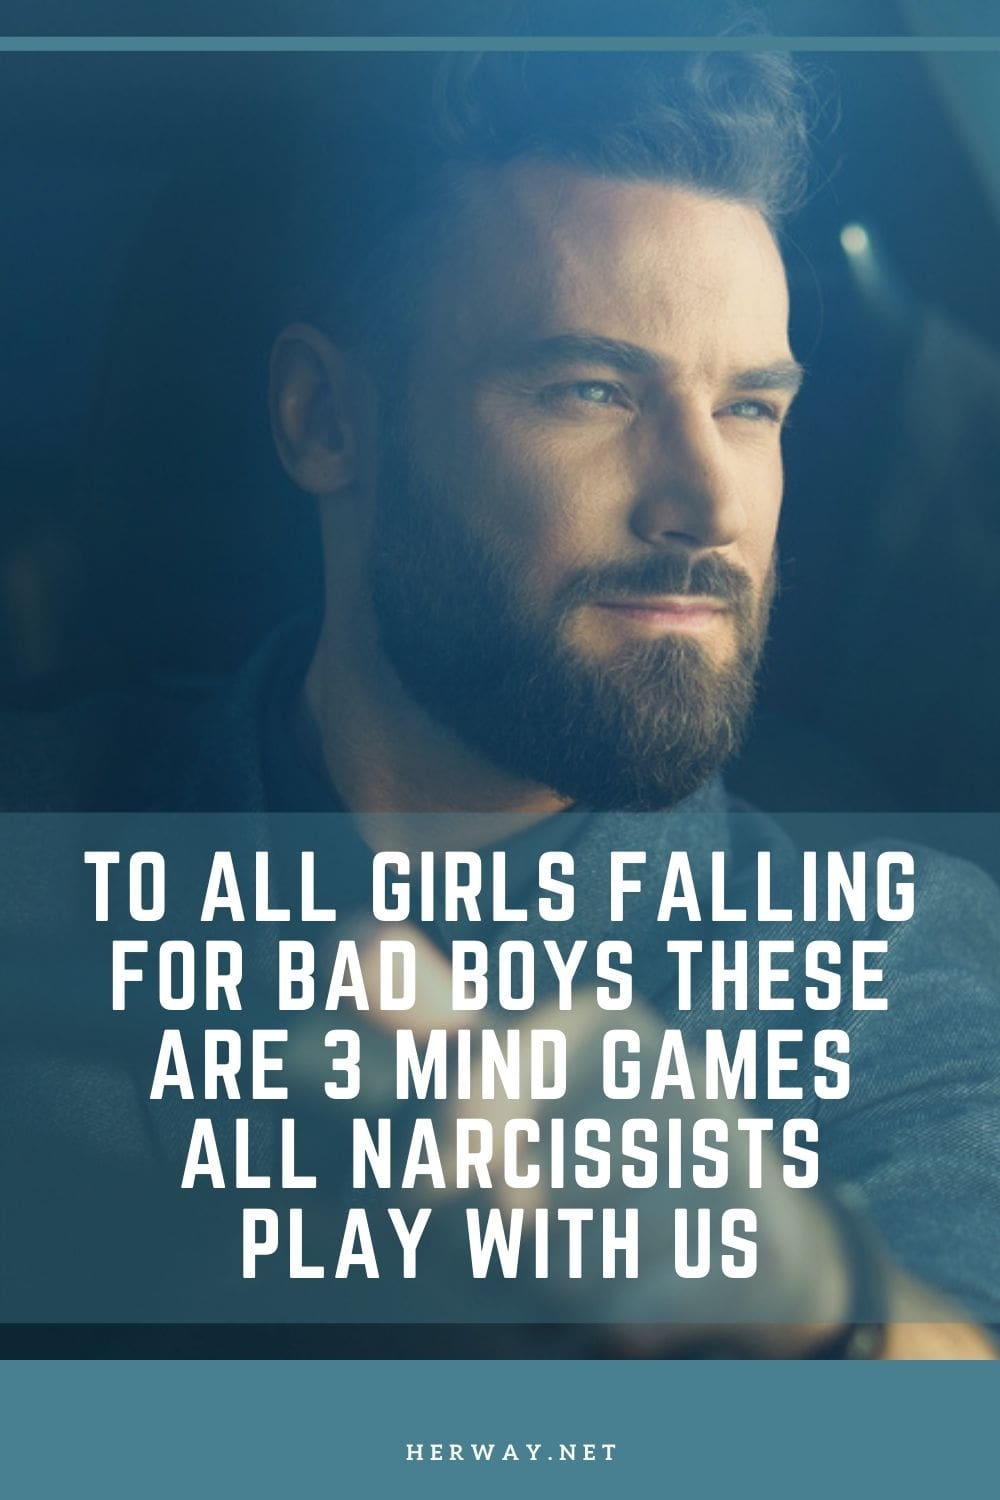 To All Girls Falling For Bad Boys These Are 3 Mind Games All Narcissists Play With Us